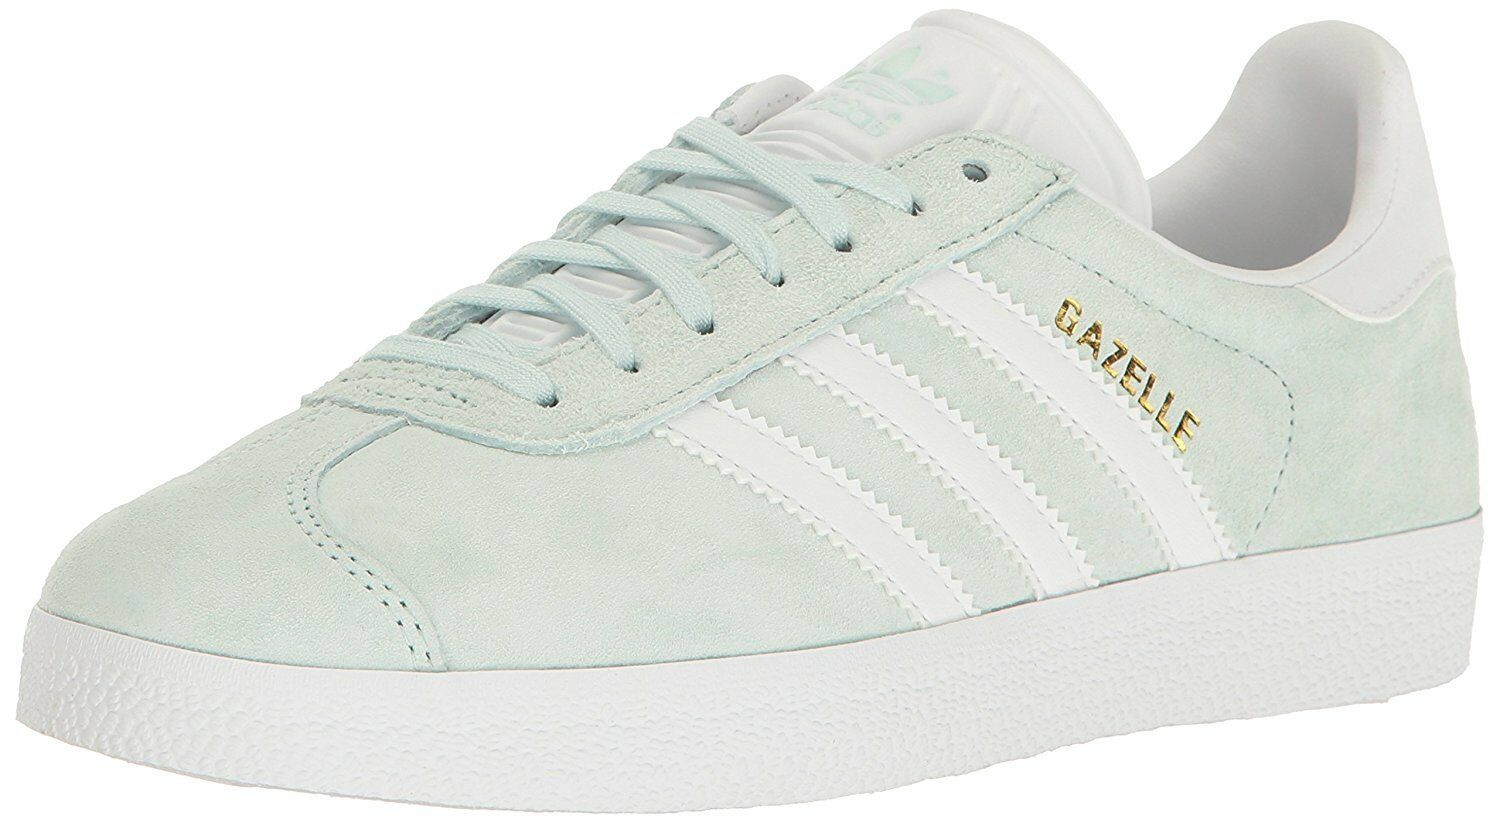 fc74a66dc ... Adidas Gazelle Womens BA9599 Ice Mint White Gold Pigskin Leather Shoes  Size 7